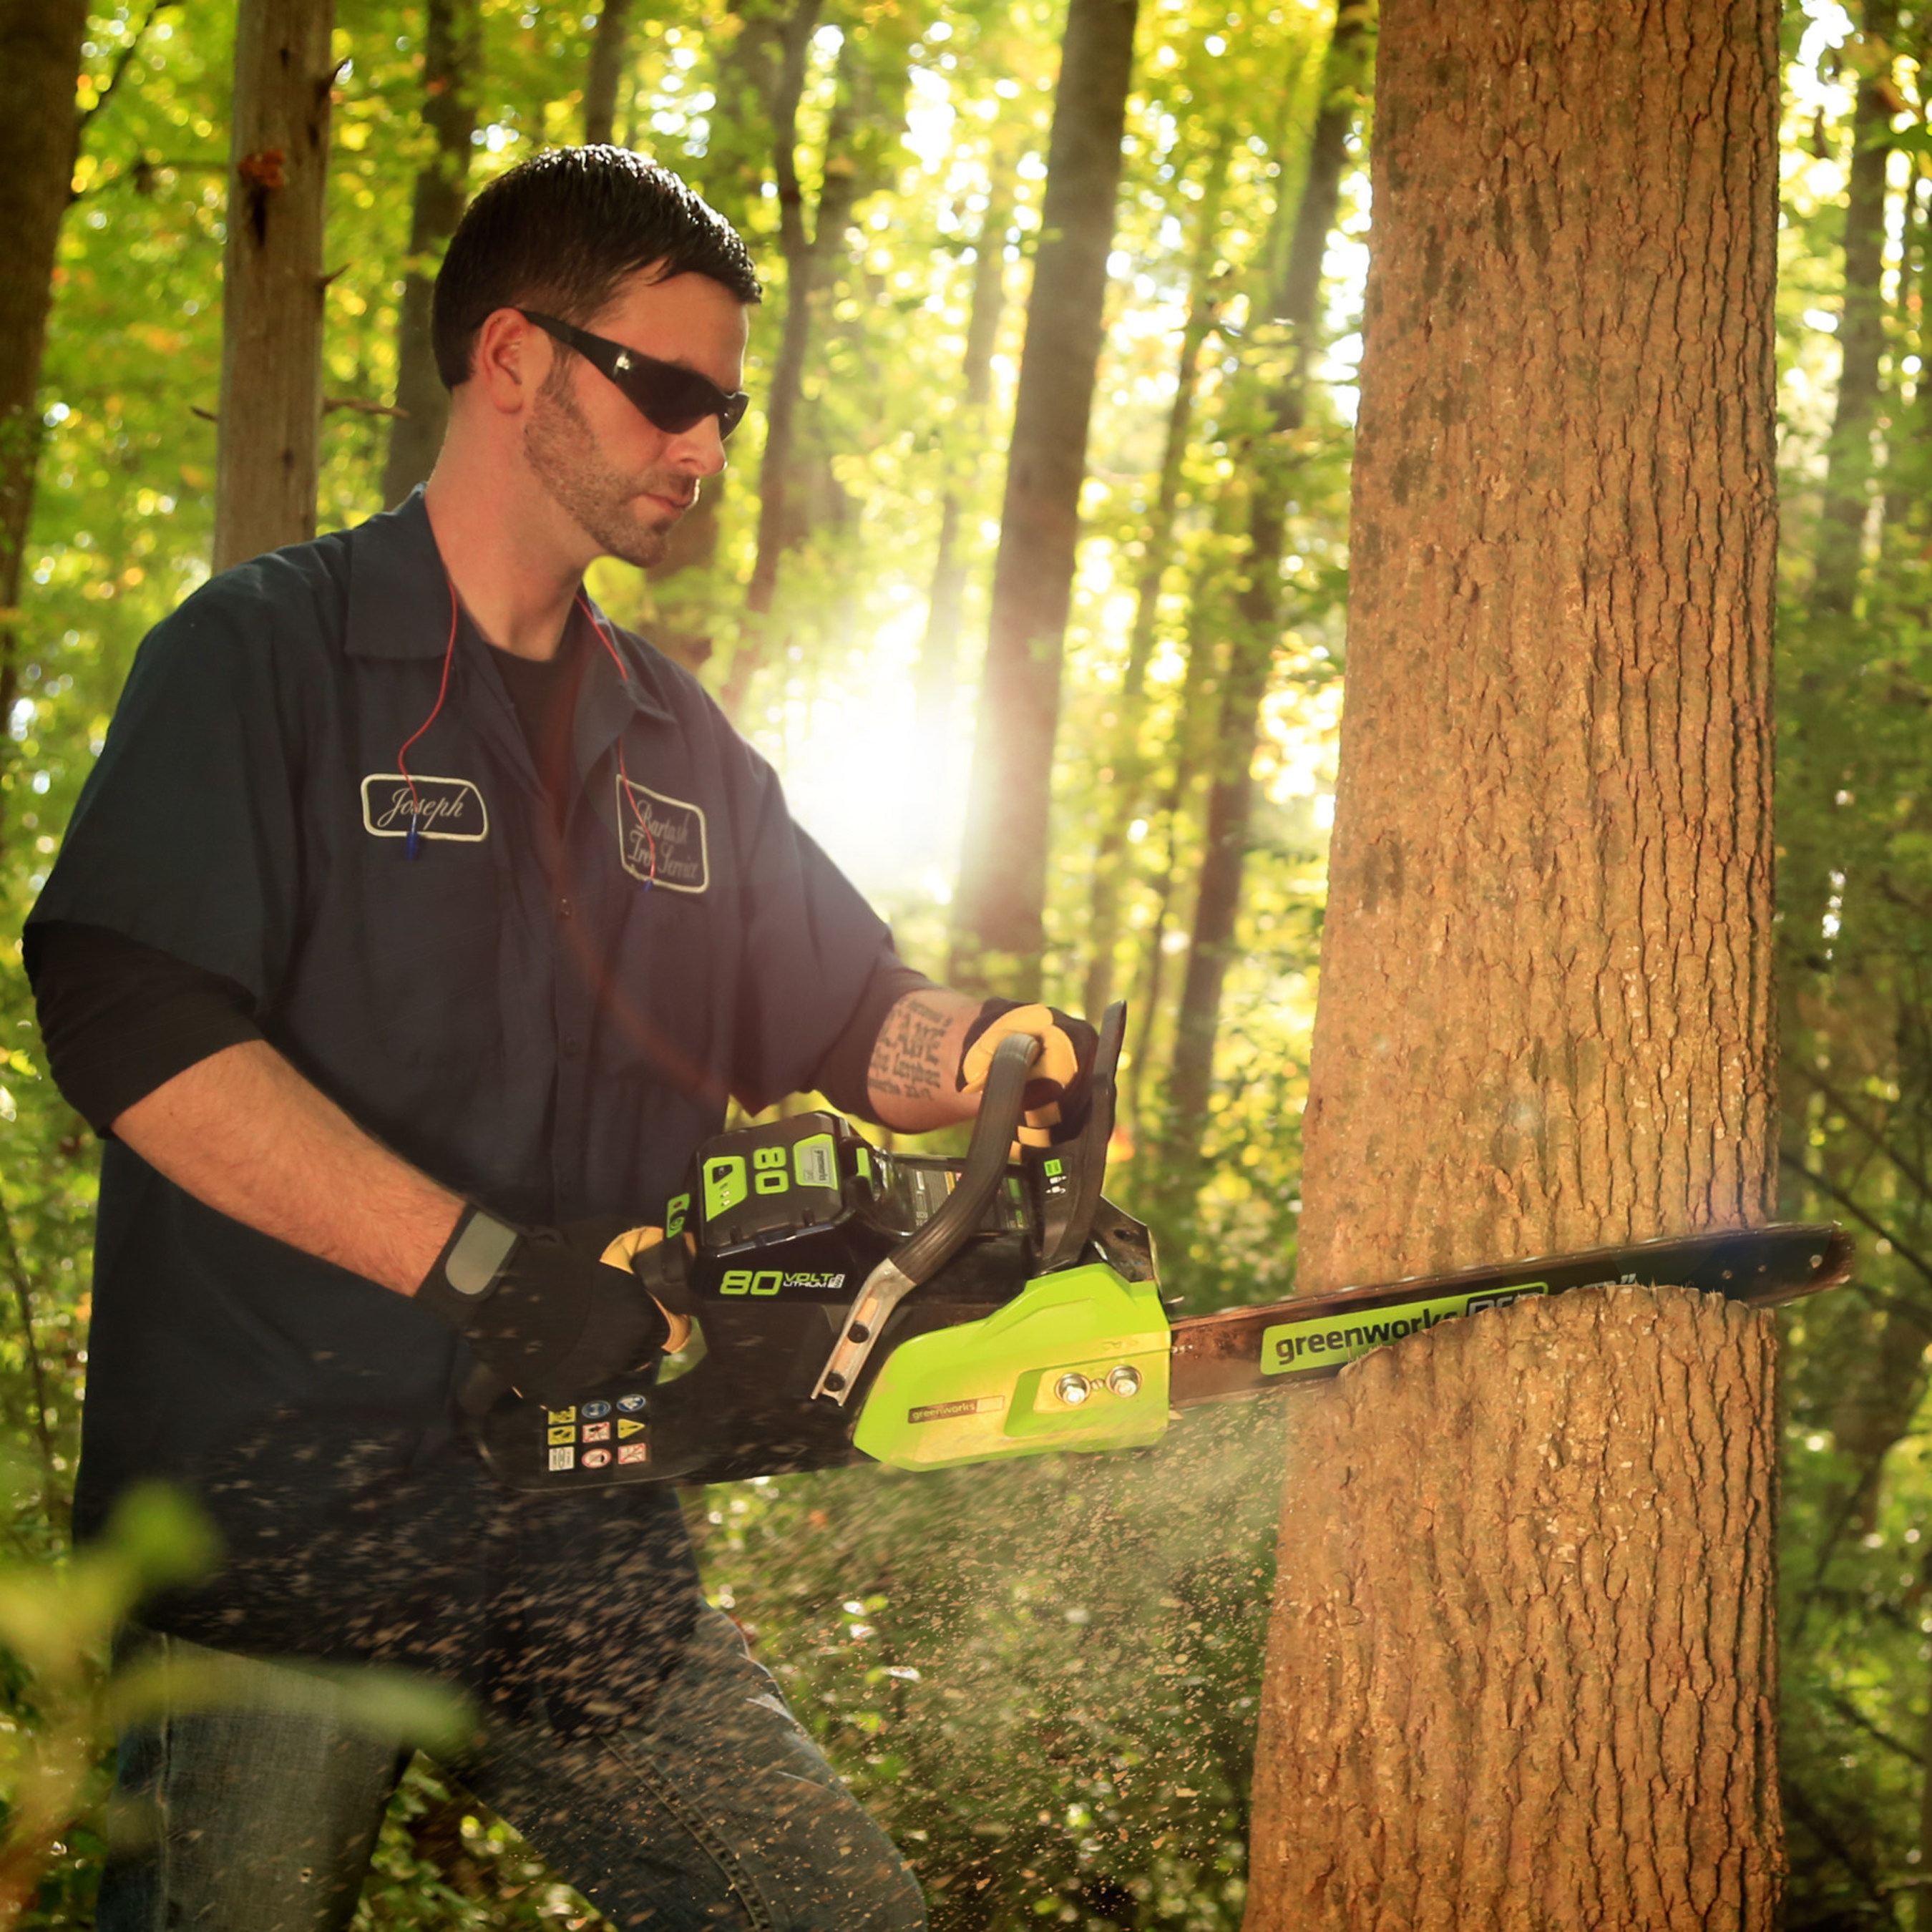 """GreenWorks Pro delivers gas-comparable power and performance without the high cost of gas and oil, which means no more tune-ups, maintenance or emissions. The 80V Chain Saw is an industry-leading 18"""" bar and chain; delivers 2.7hp, equivalent to a 42cc gas-powered saw; digital controlled brushless motor for more torque; electronic chain brake for safe operation.  Minimal vibration and noise."""